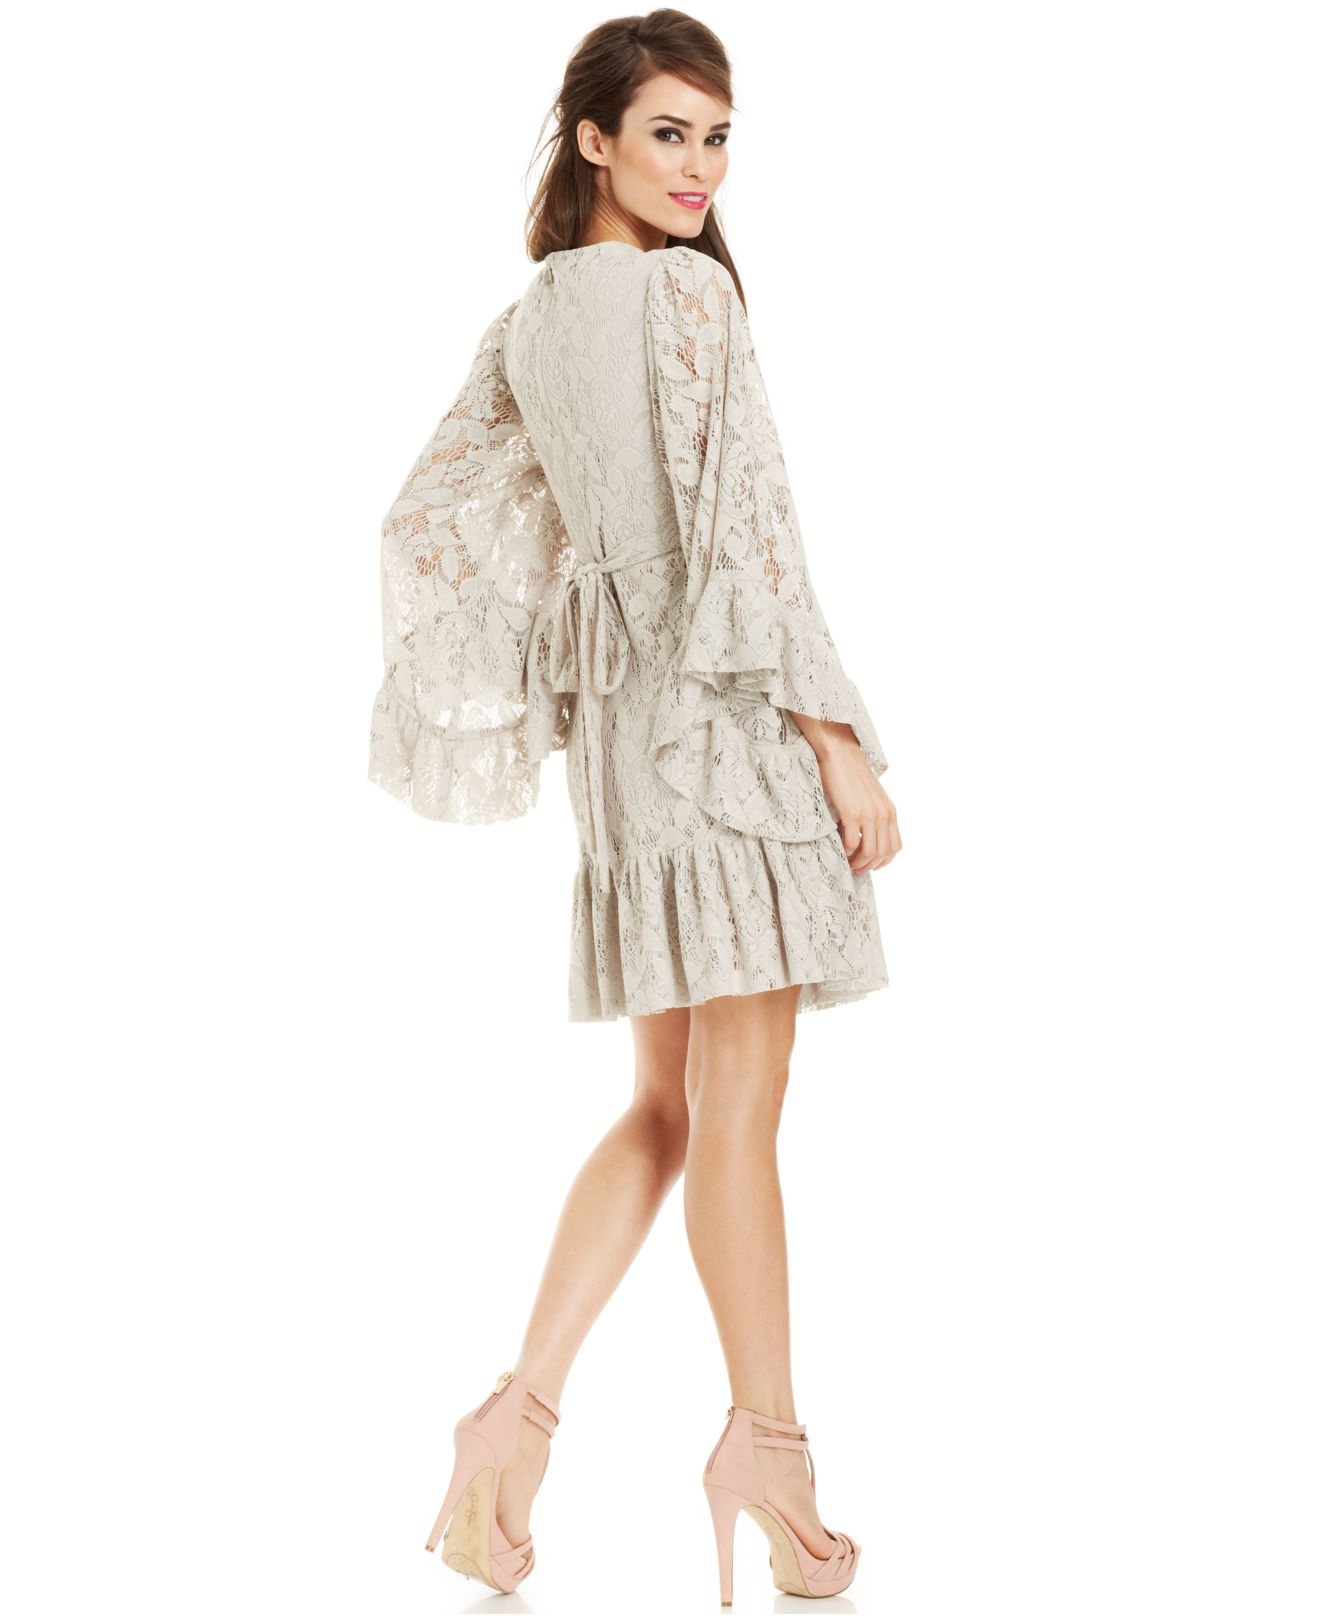 Bell Sleeve Ruffled Lace Dress